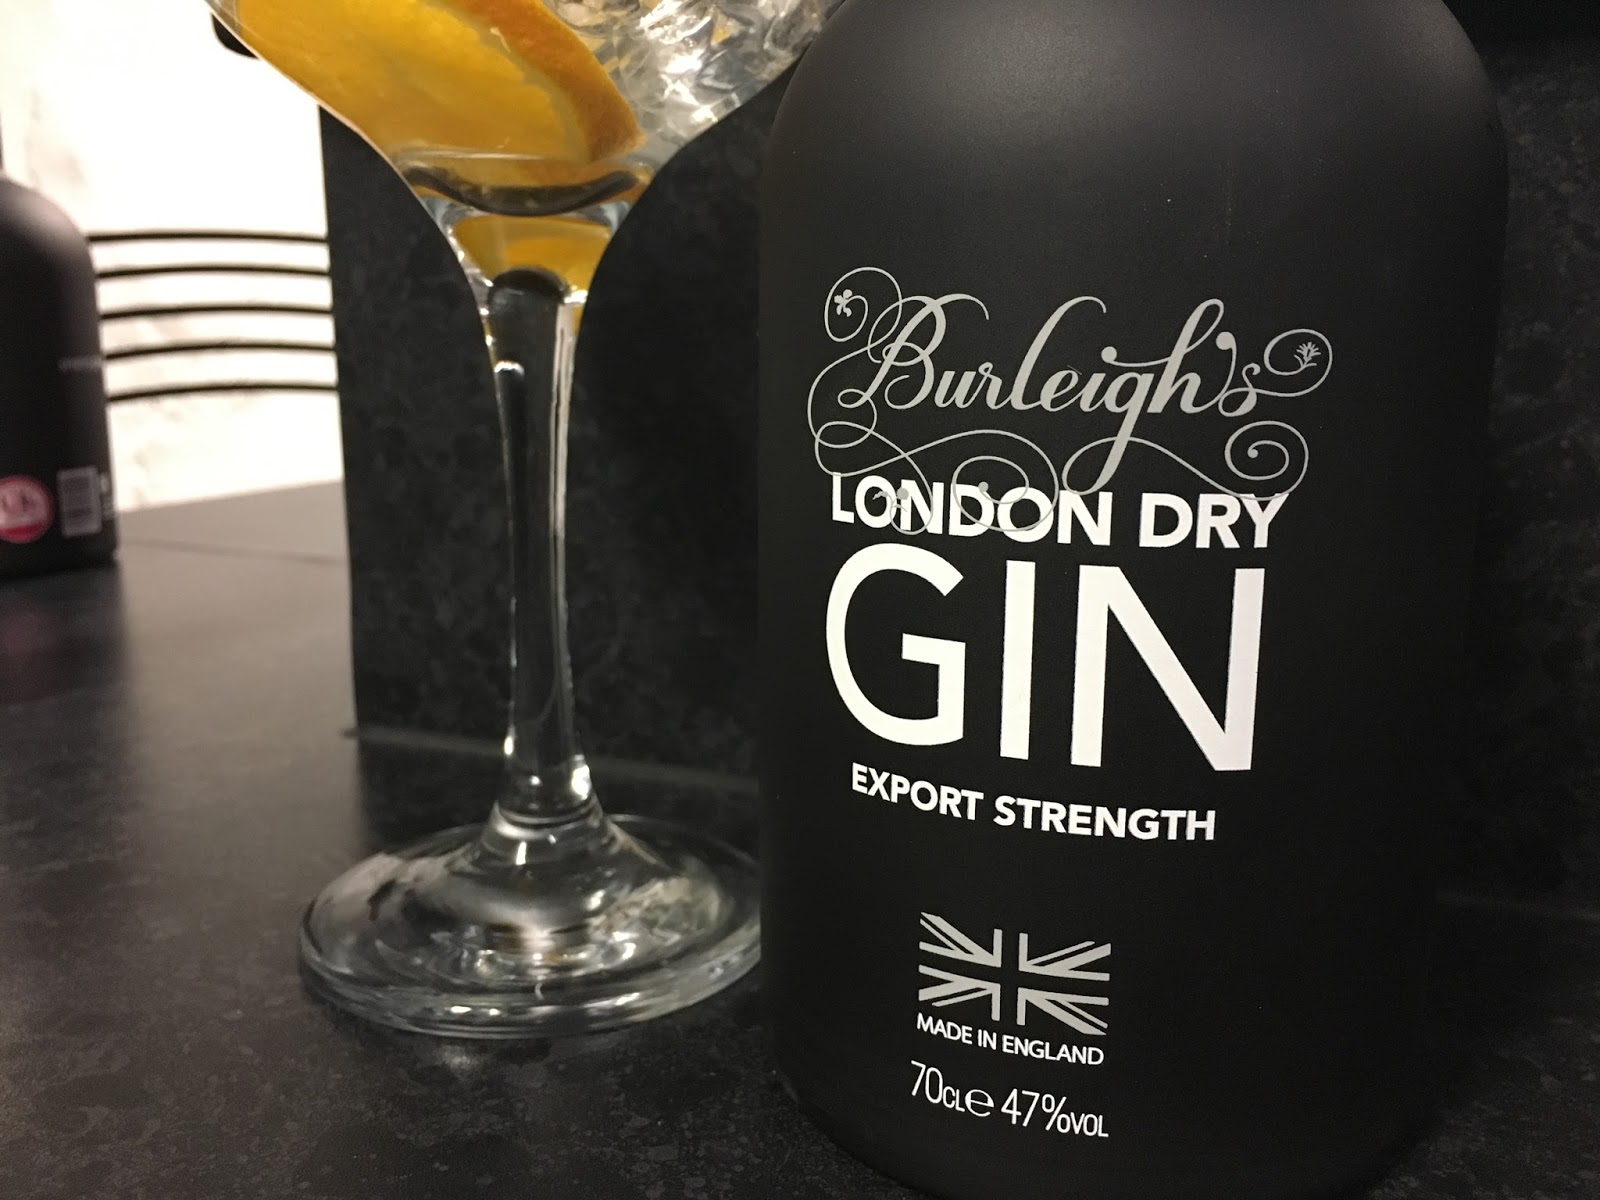 Burleighs gin tour \ classic gin and tonic \ Priceless Life of Mine \ over 40 lifestyle blogger